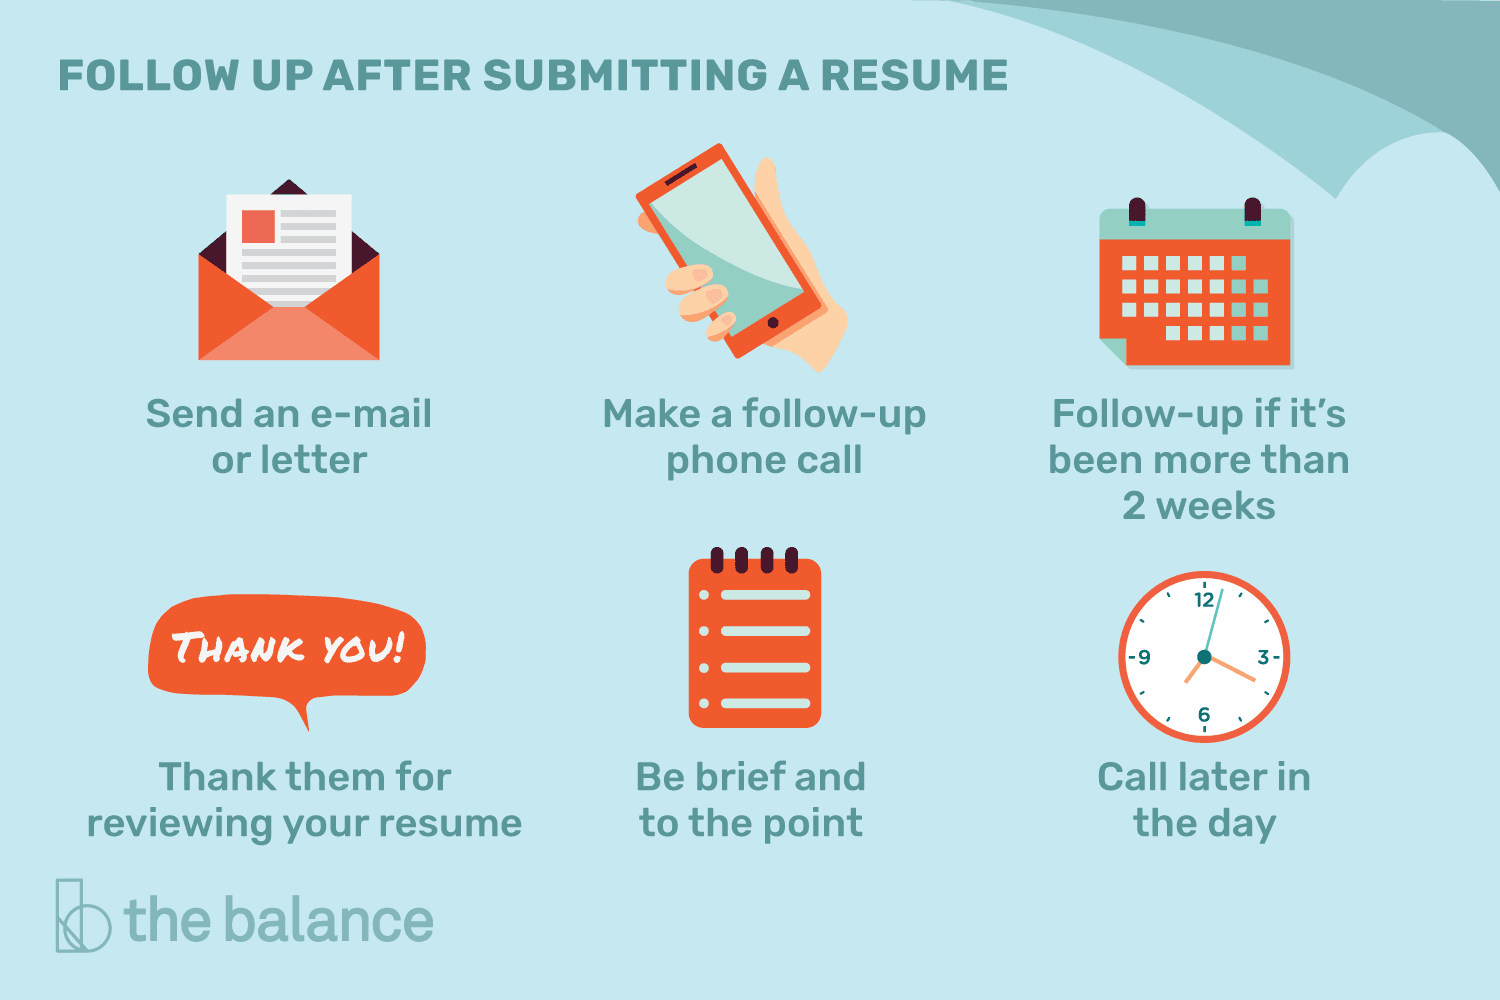 How To Follow Up After Submitting A Resume